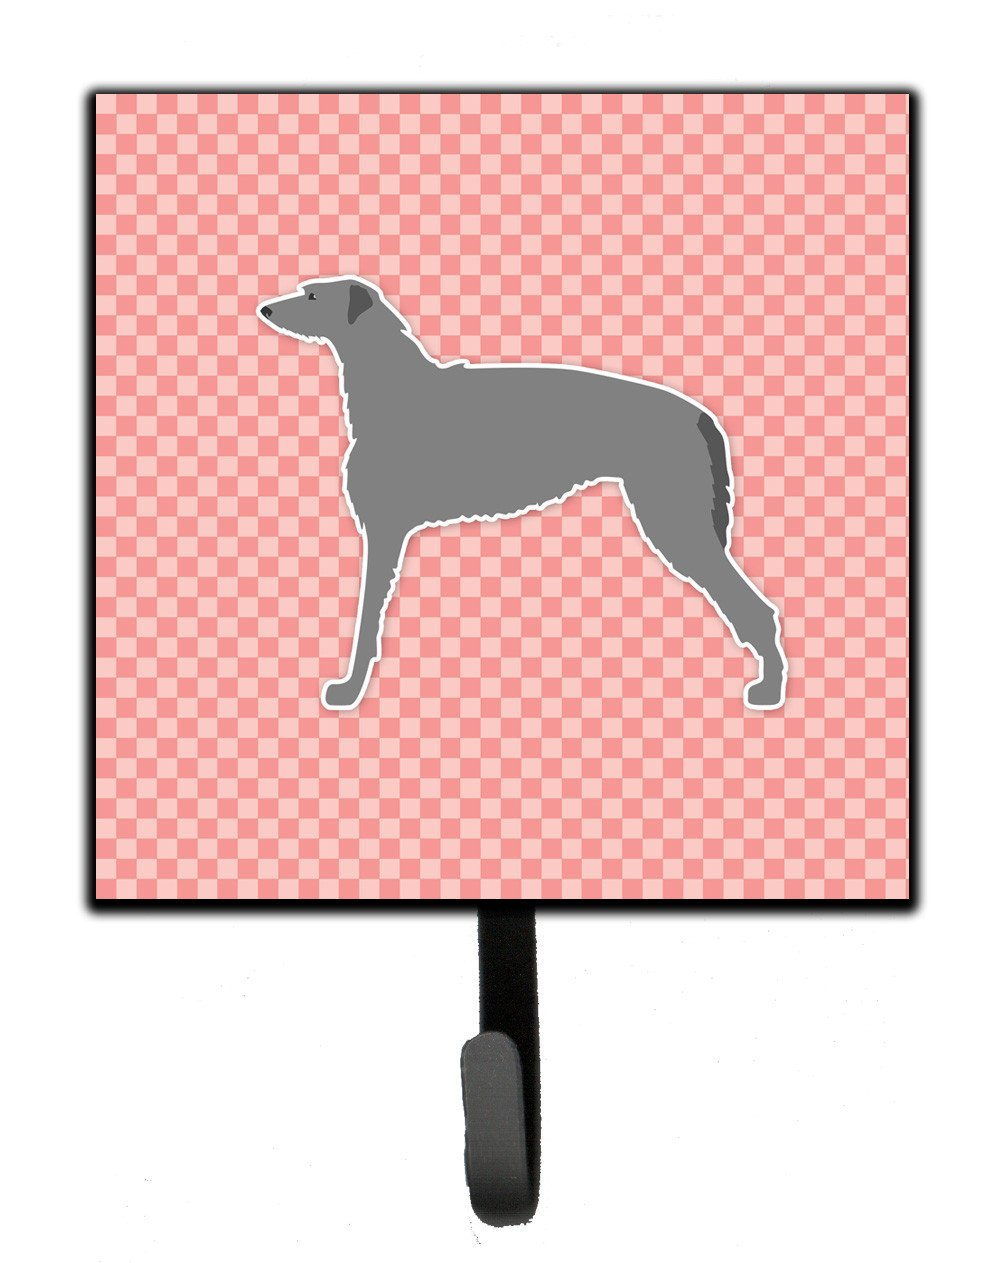 Scottish Deerhound Checkerboard Pink Leash or Key Holder BB3596SH4 by Caroline's Treasures